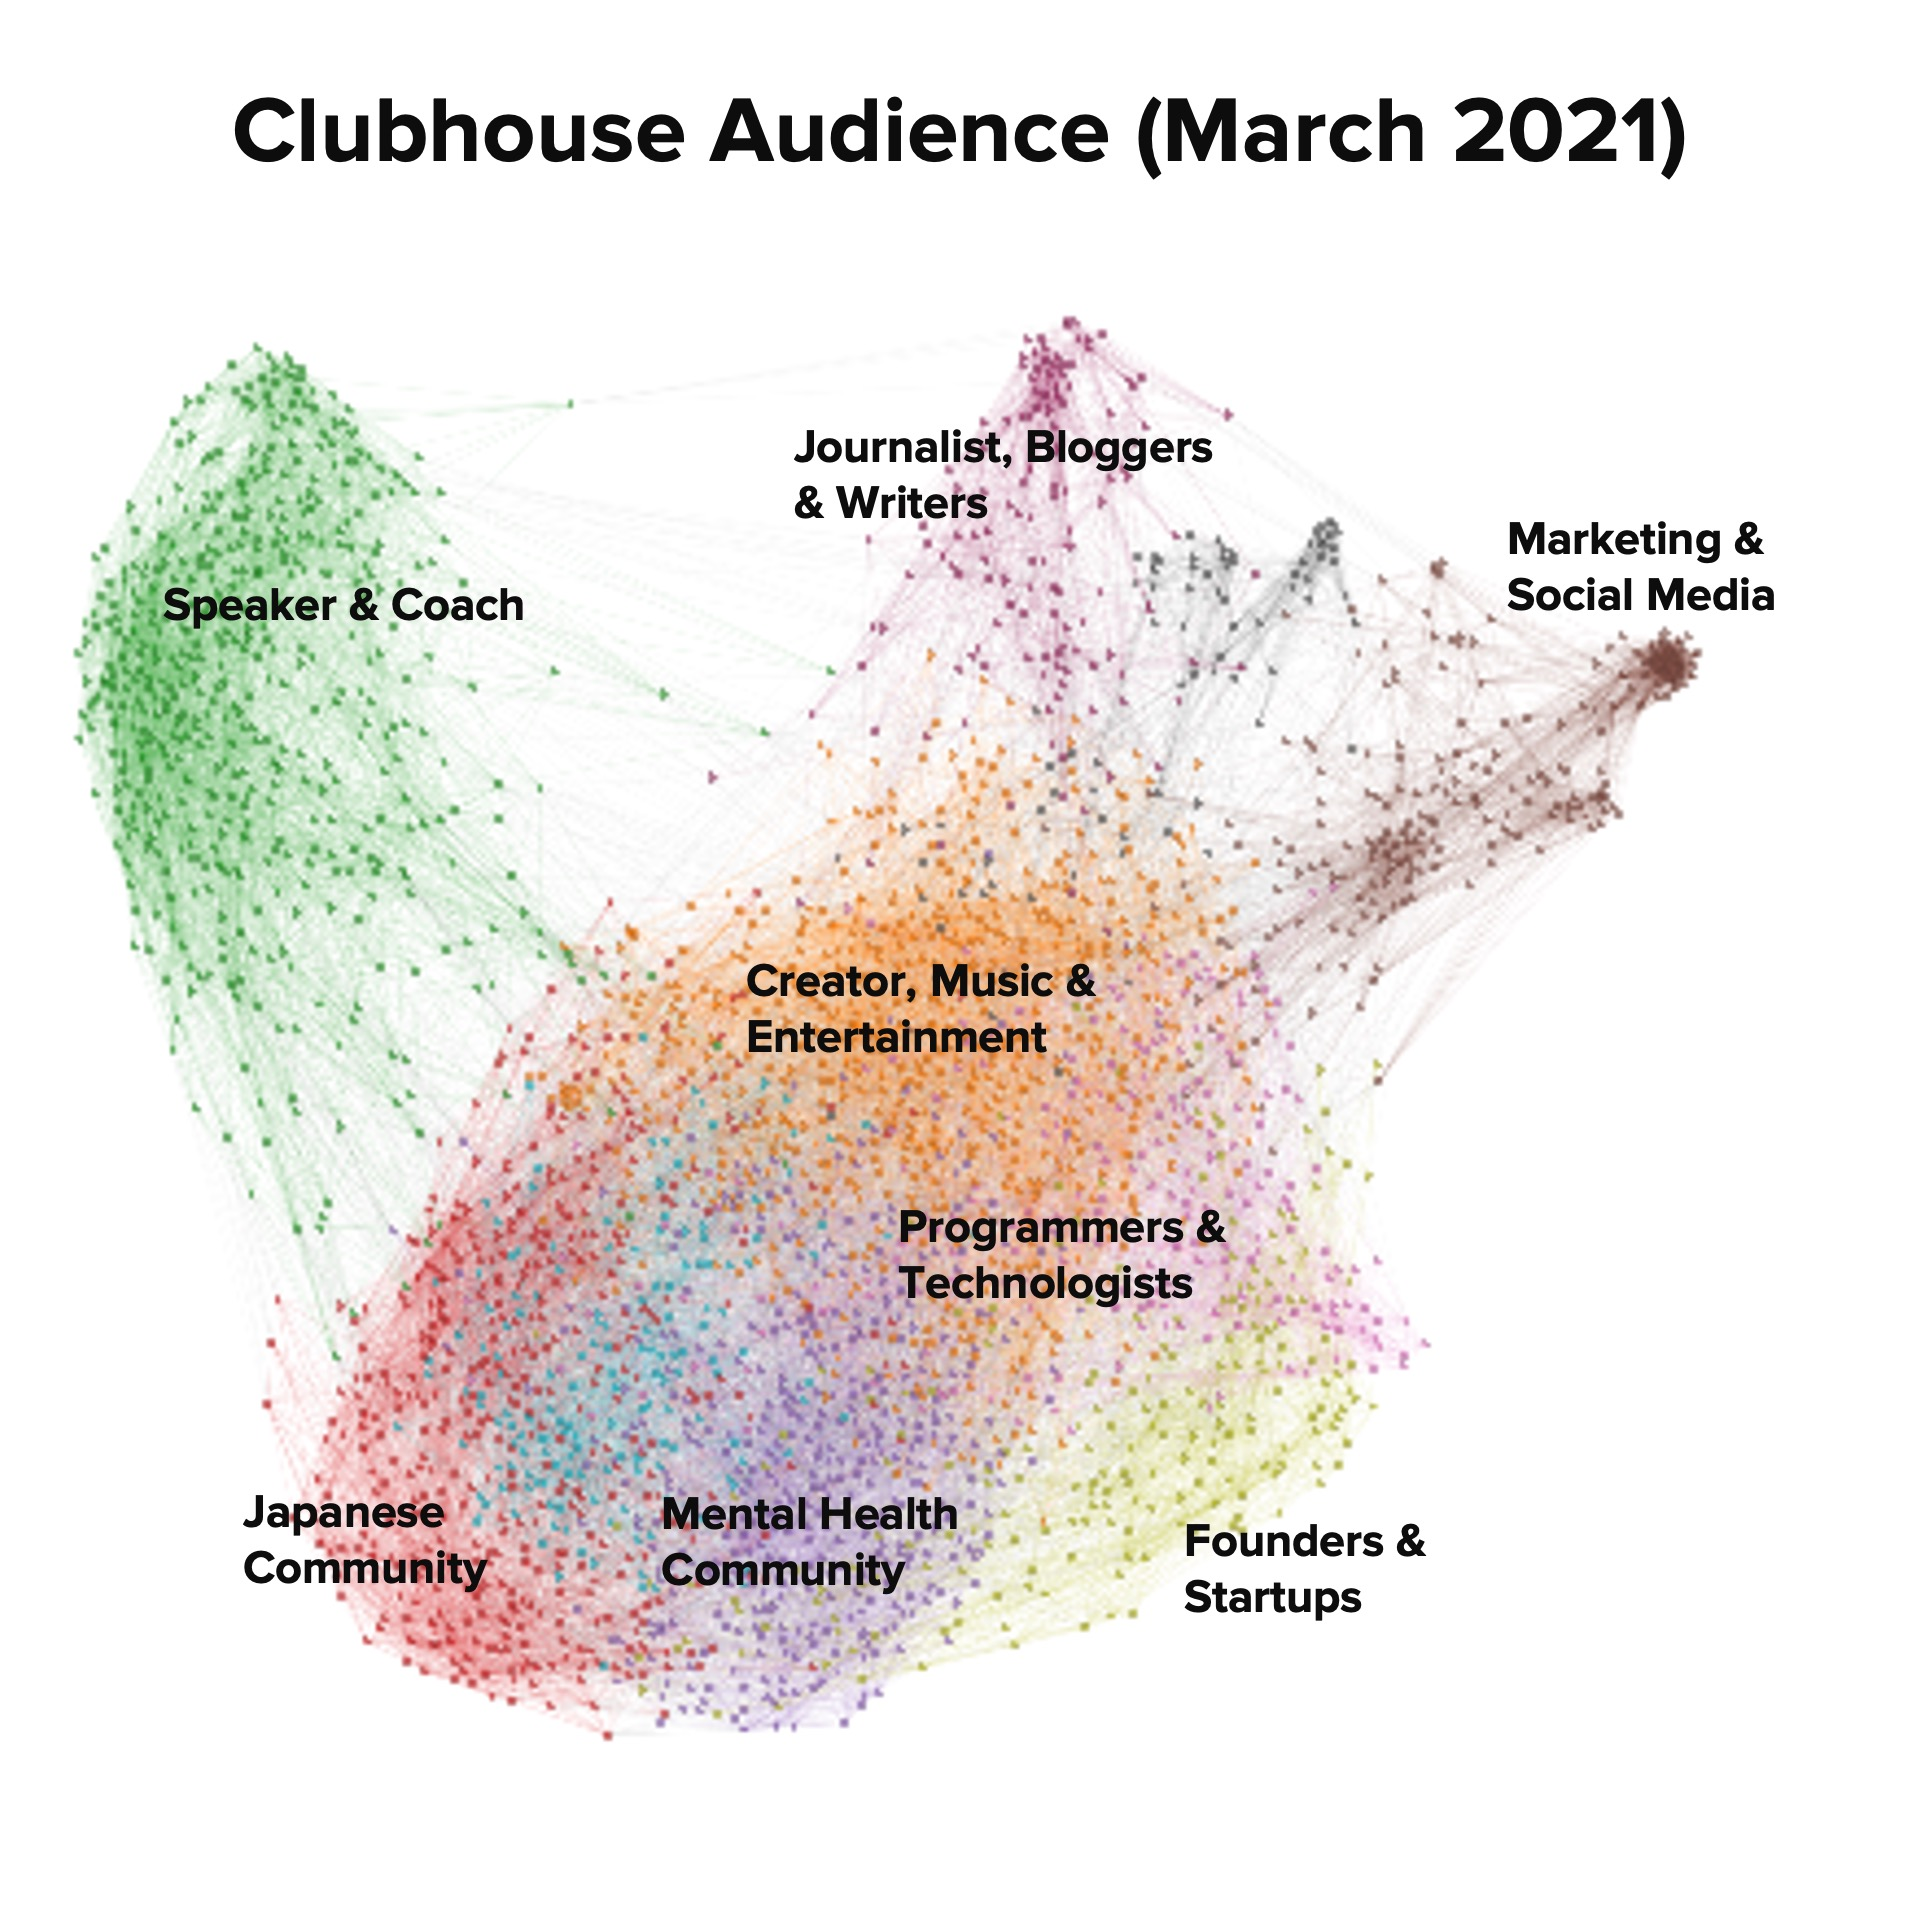 Clubhouse Audience Analysis